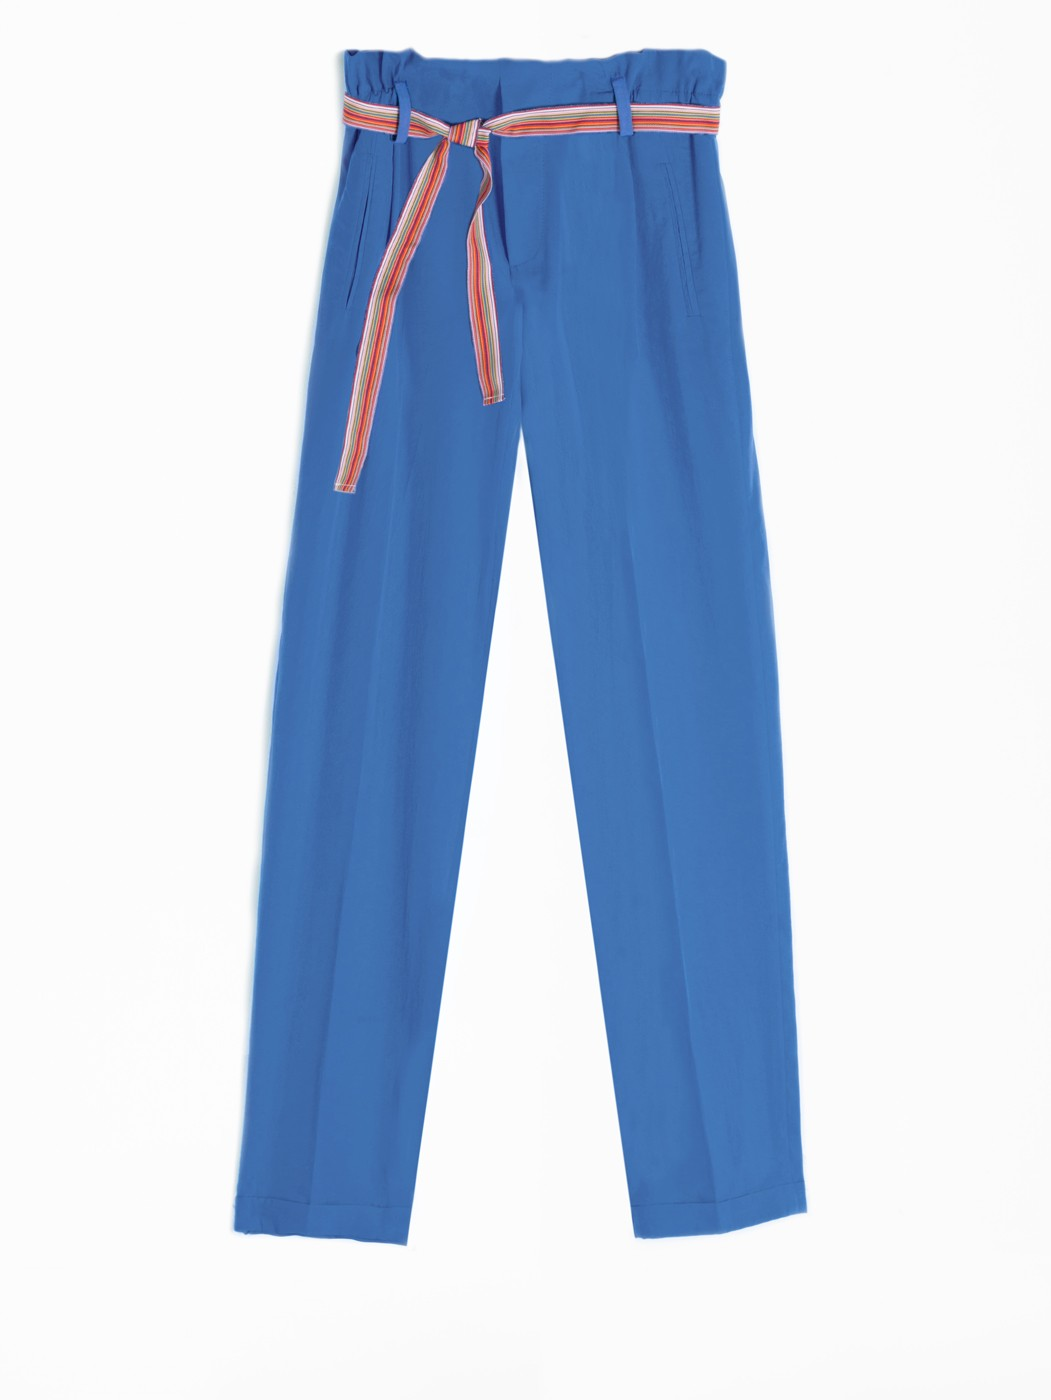 MILY TROUSERS BLUE LYOCELL